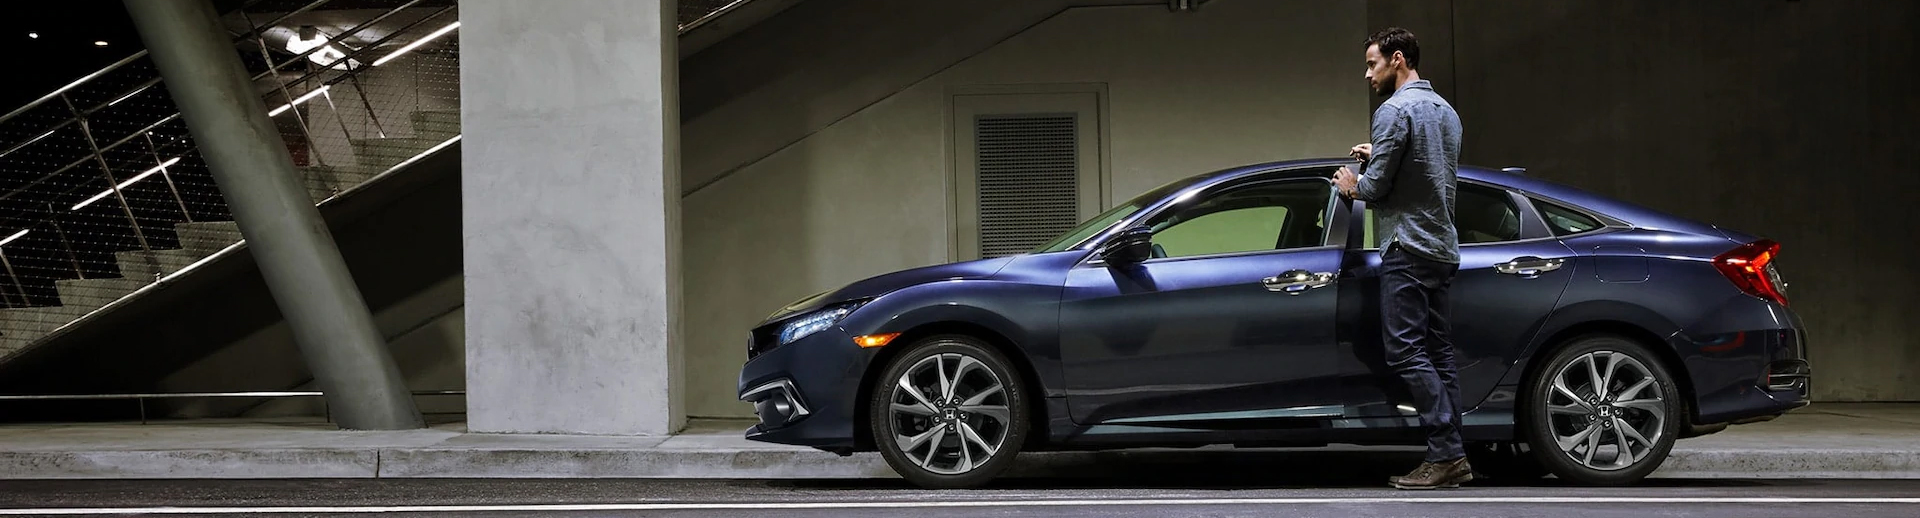 2021 Honda Civic Lifestyle Photo